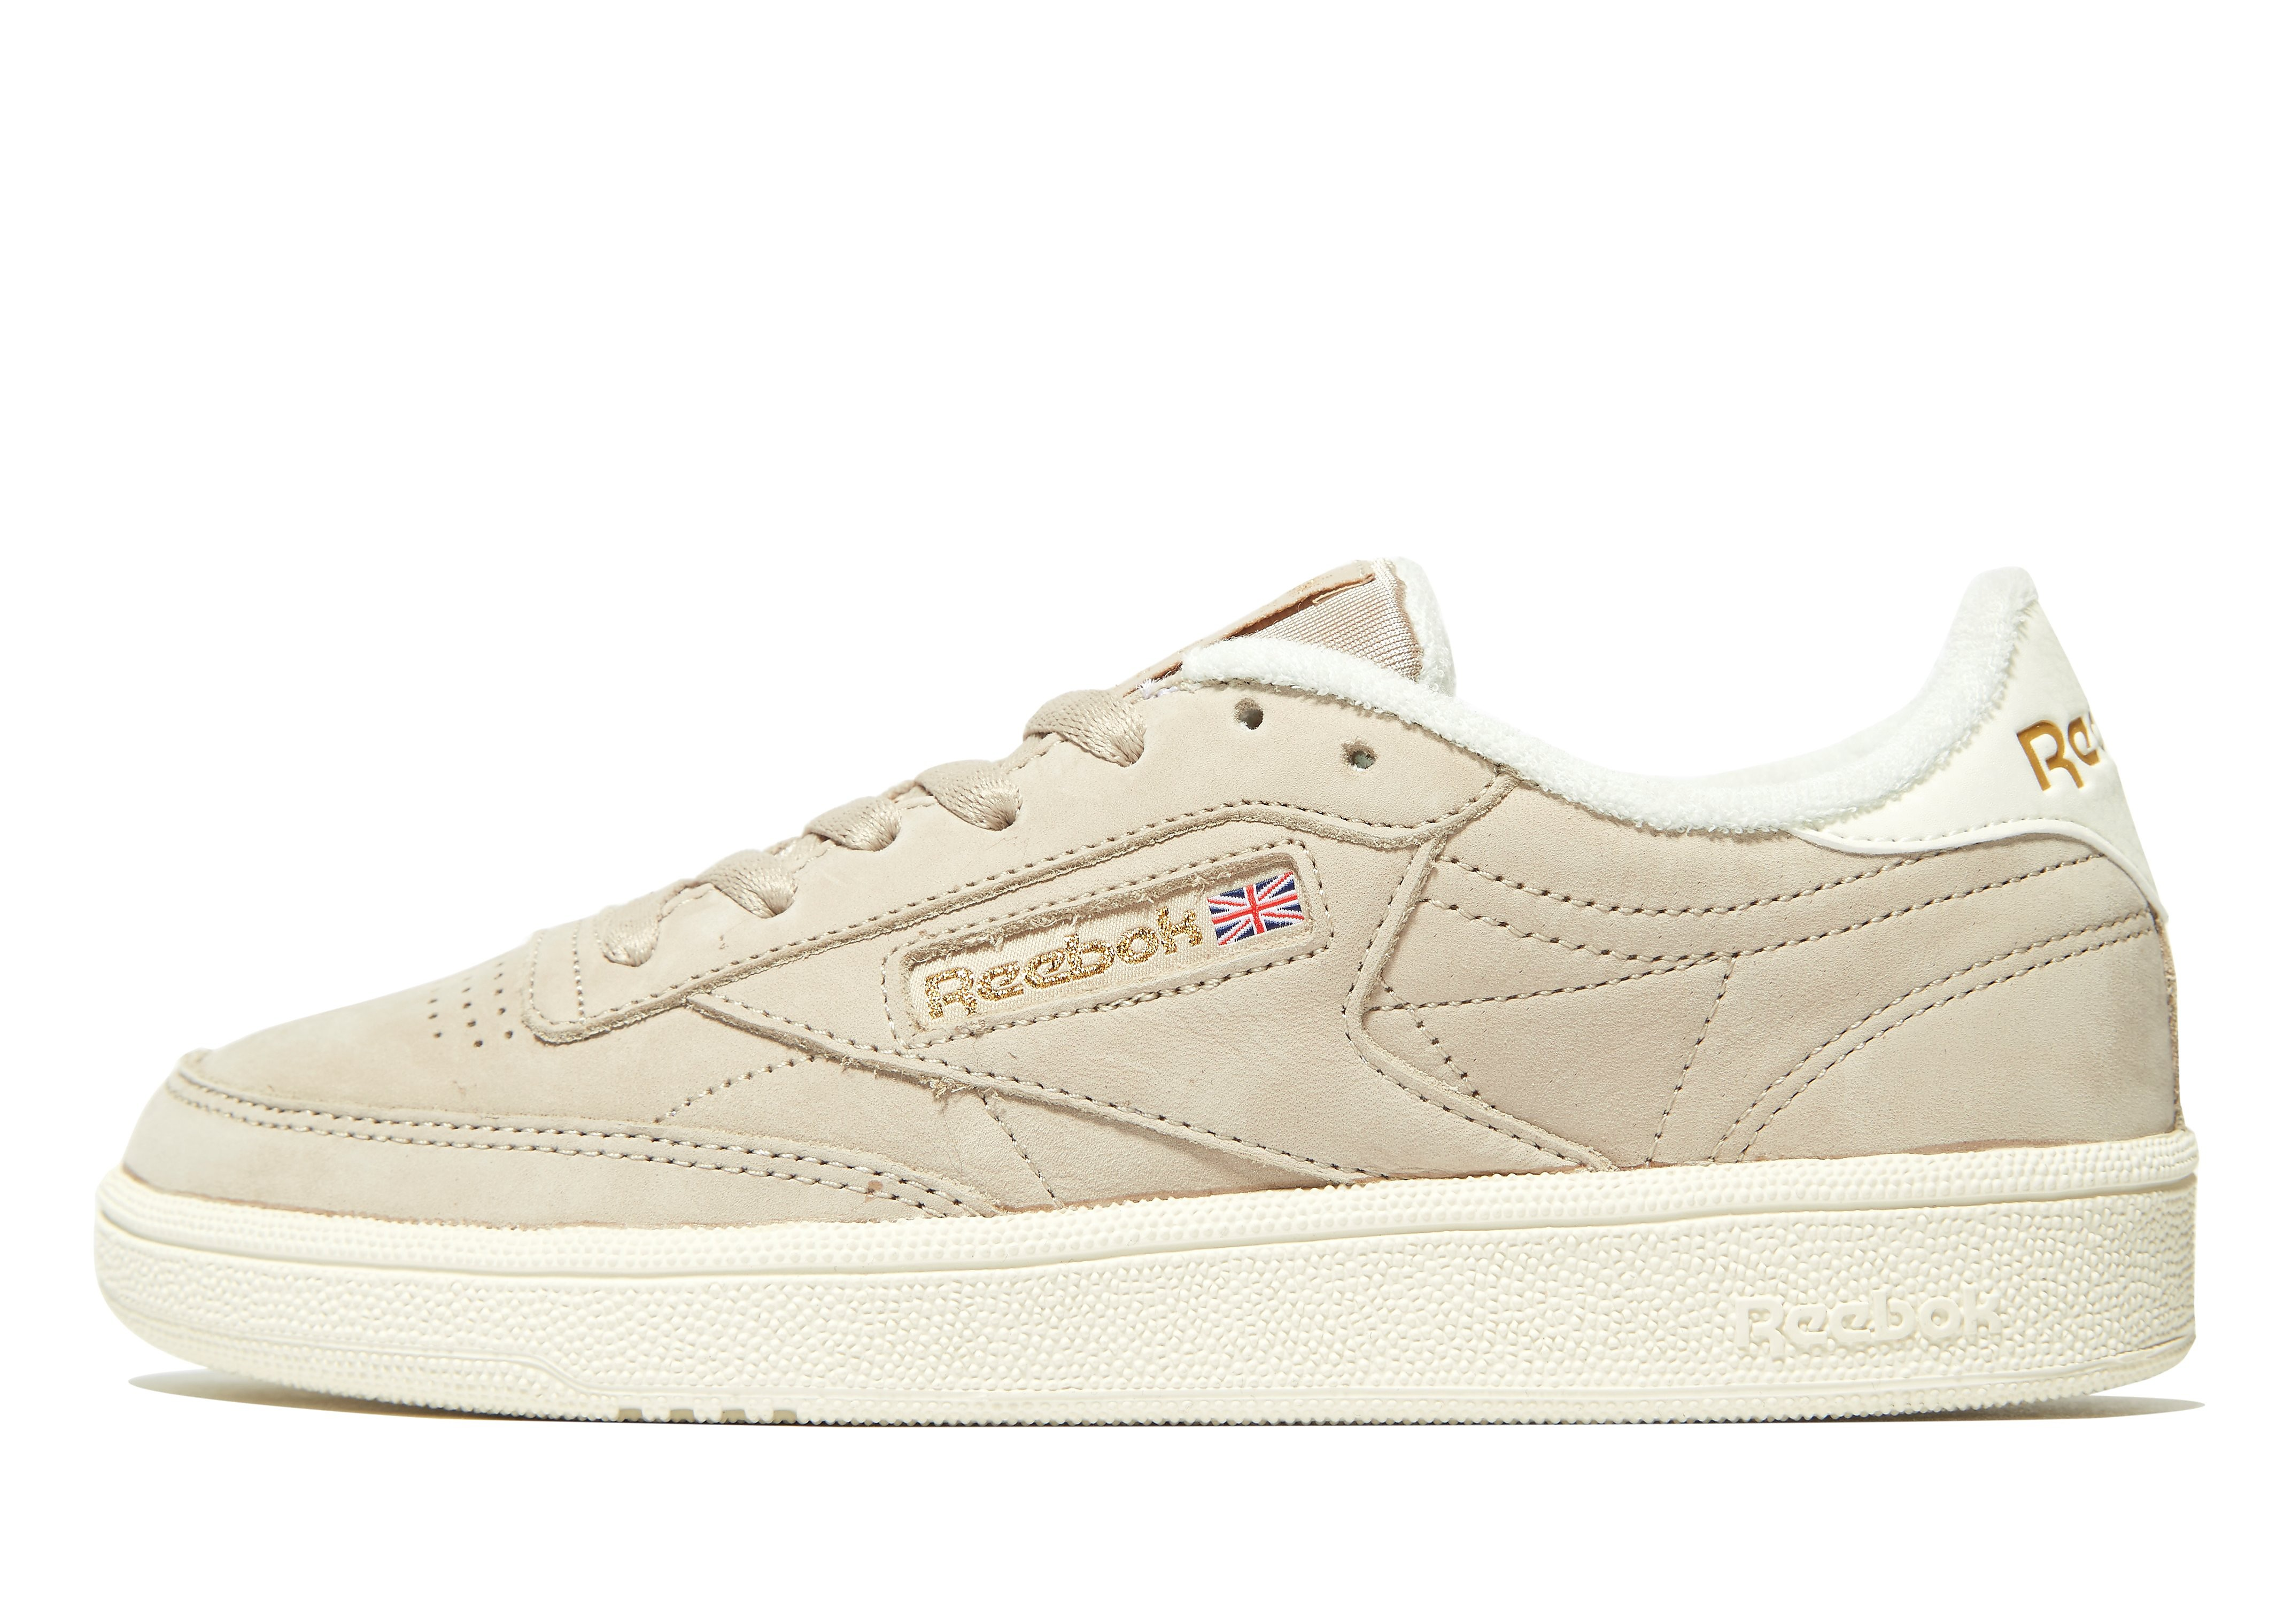 Reebok Club C 85 Women's